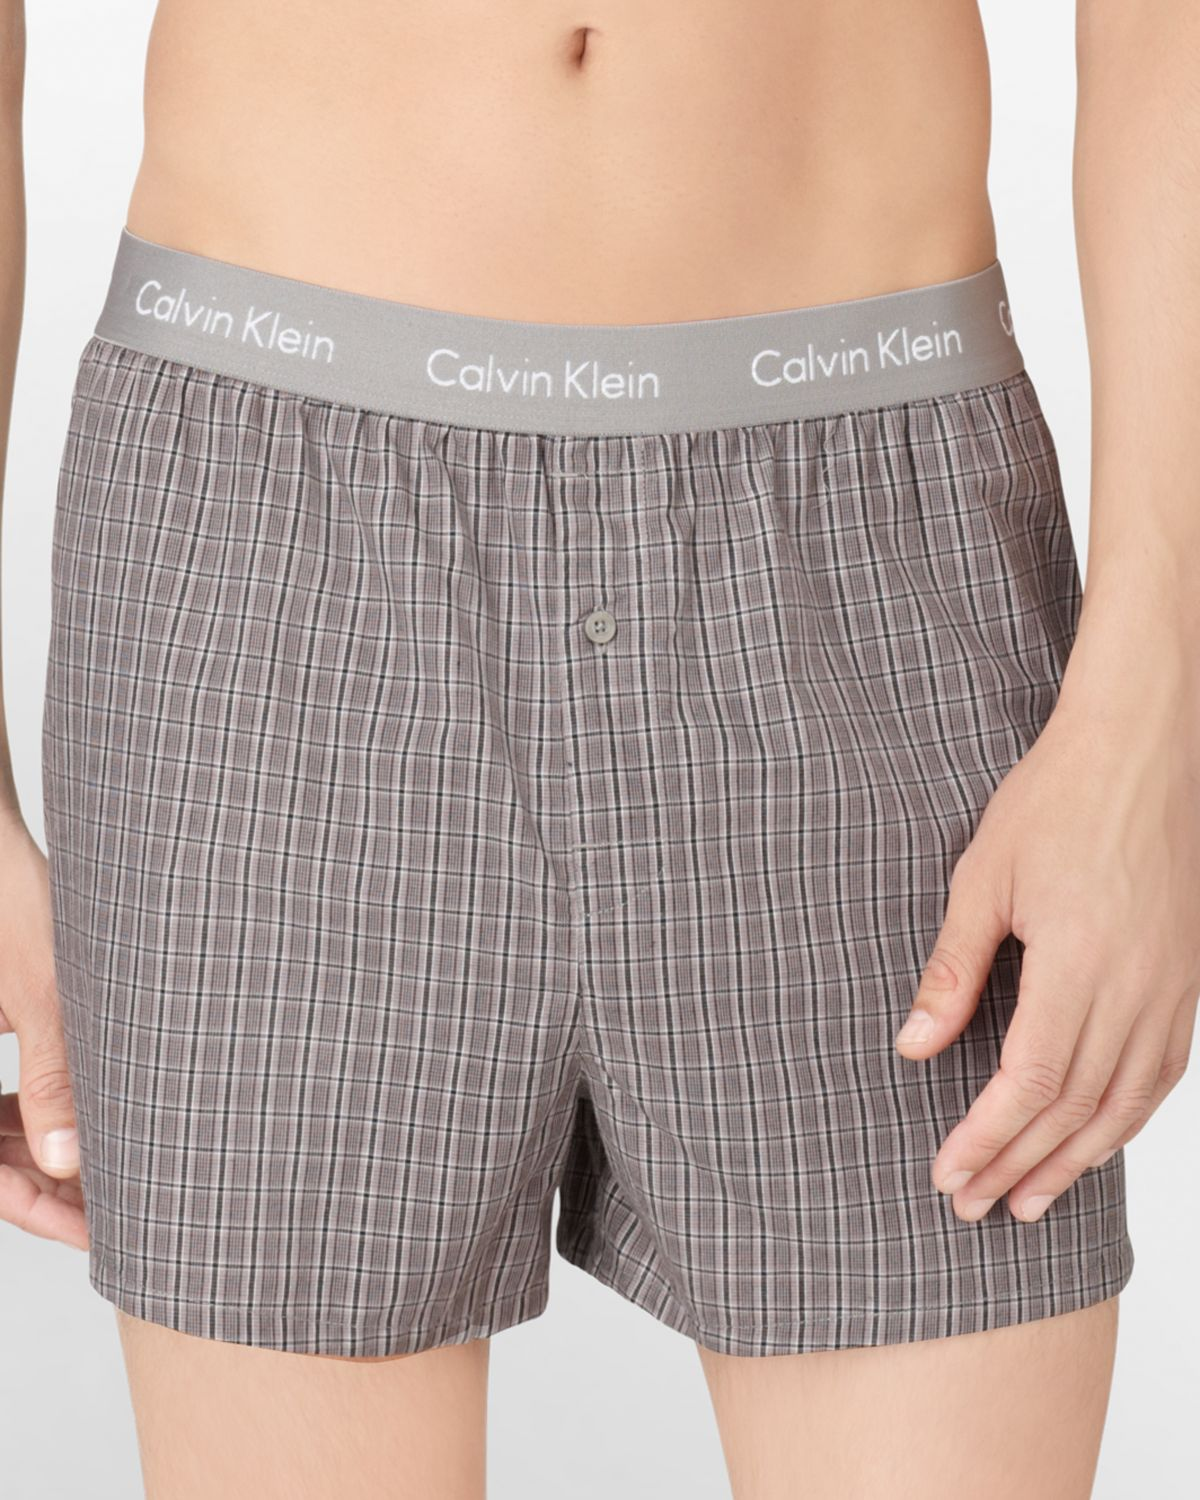 calvin klein slim fit woven plaid boxer shorts in gray for. Black Bedroom Furniture Sets. Home Design Ideas